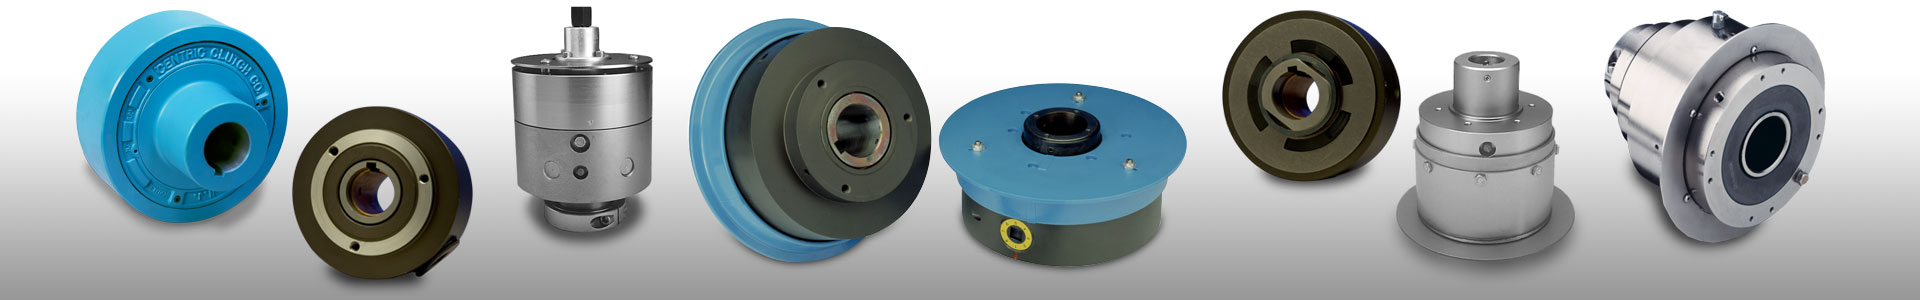 Torque Limiter Clutch Selection Banner